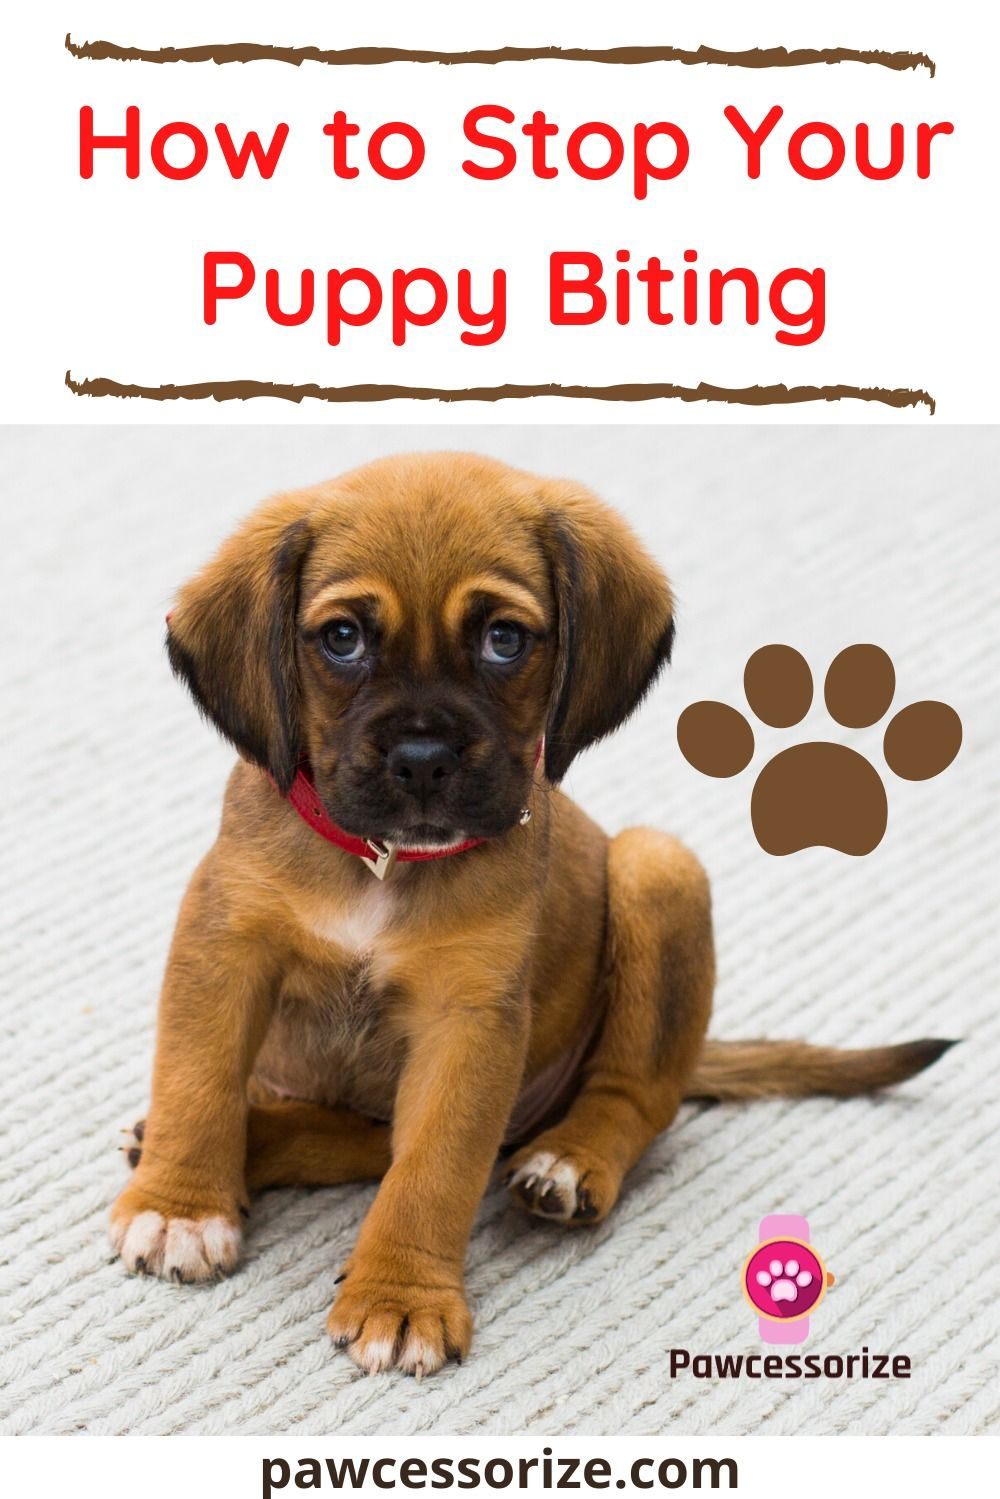 HOW TO GET A PUPPY TO STOP BITING THE STEP BY STEP GUIDE